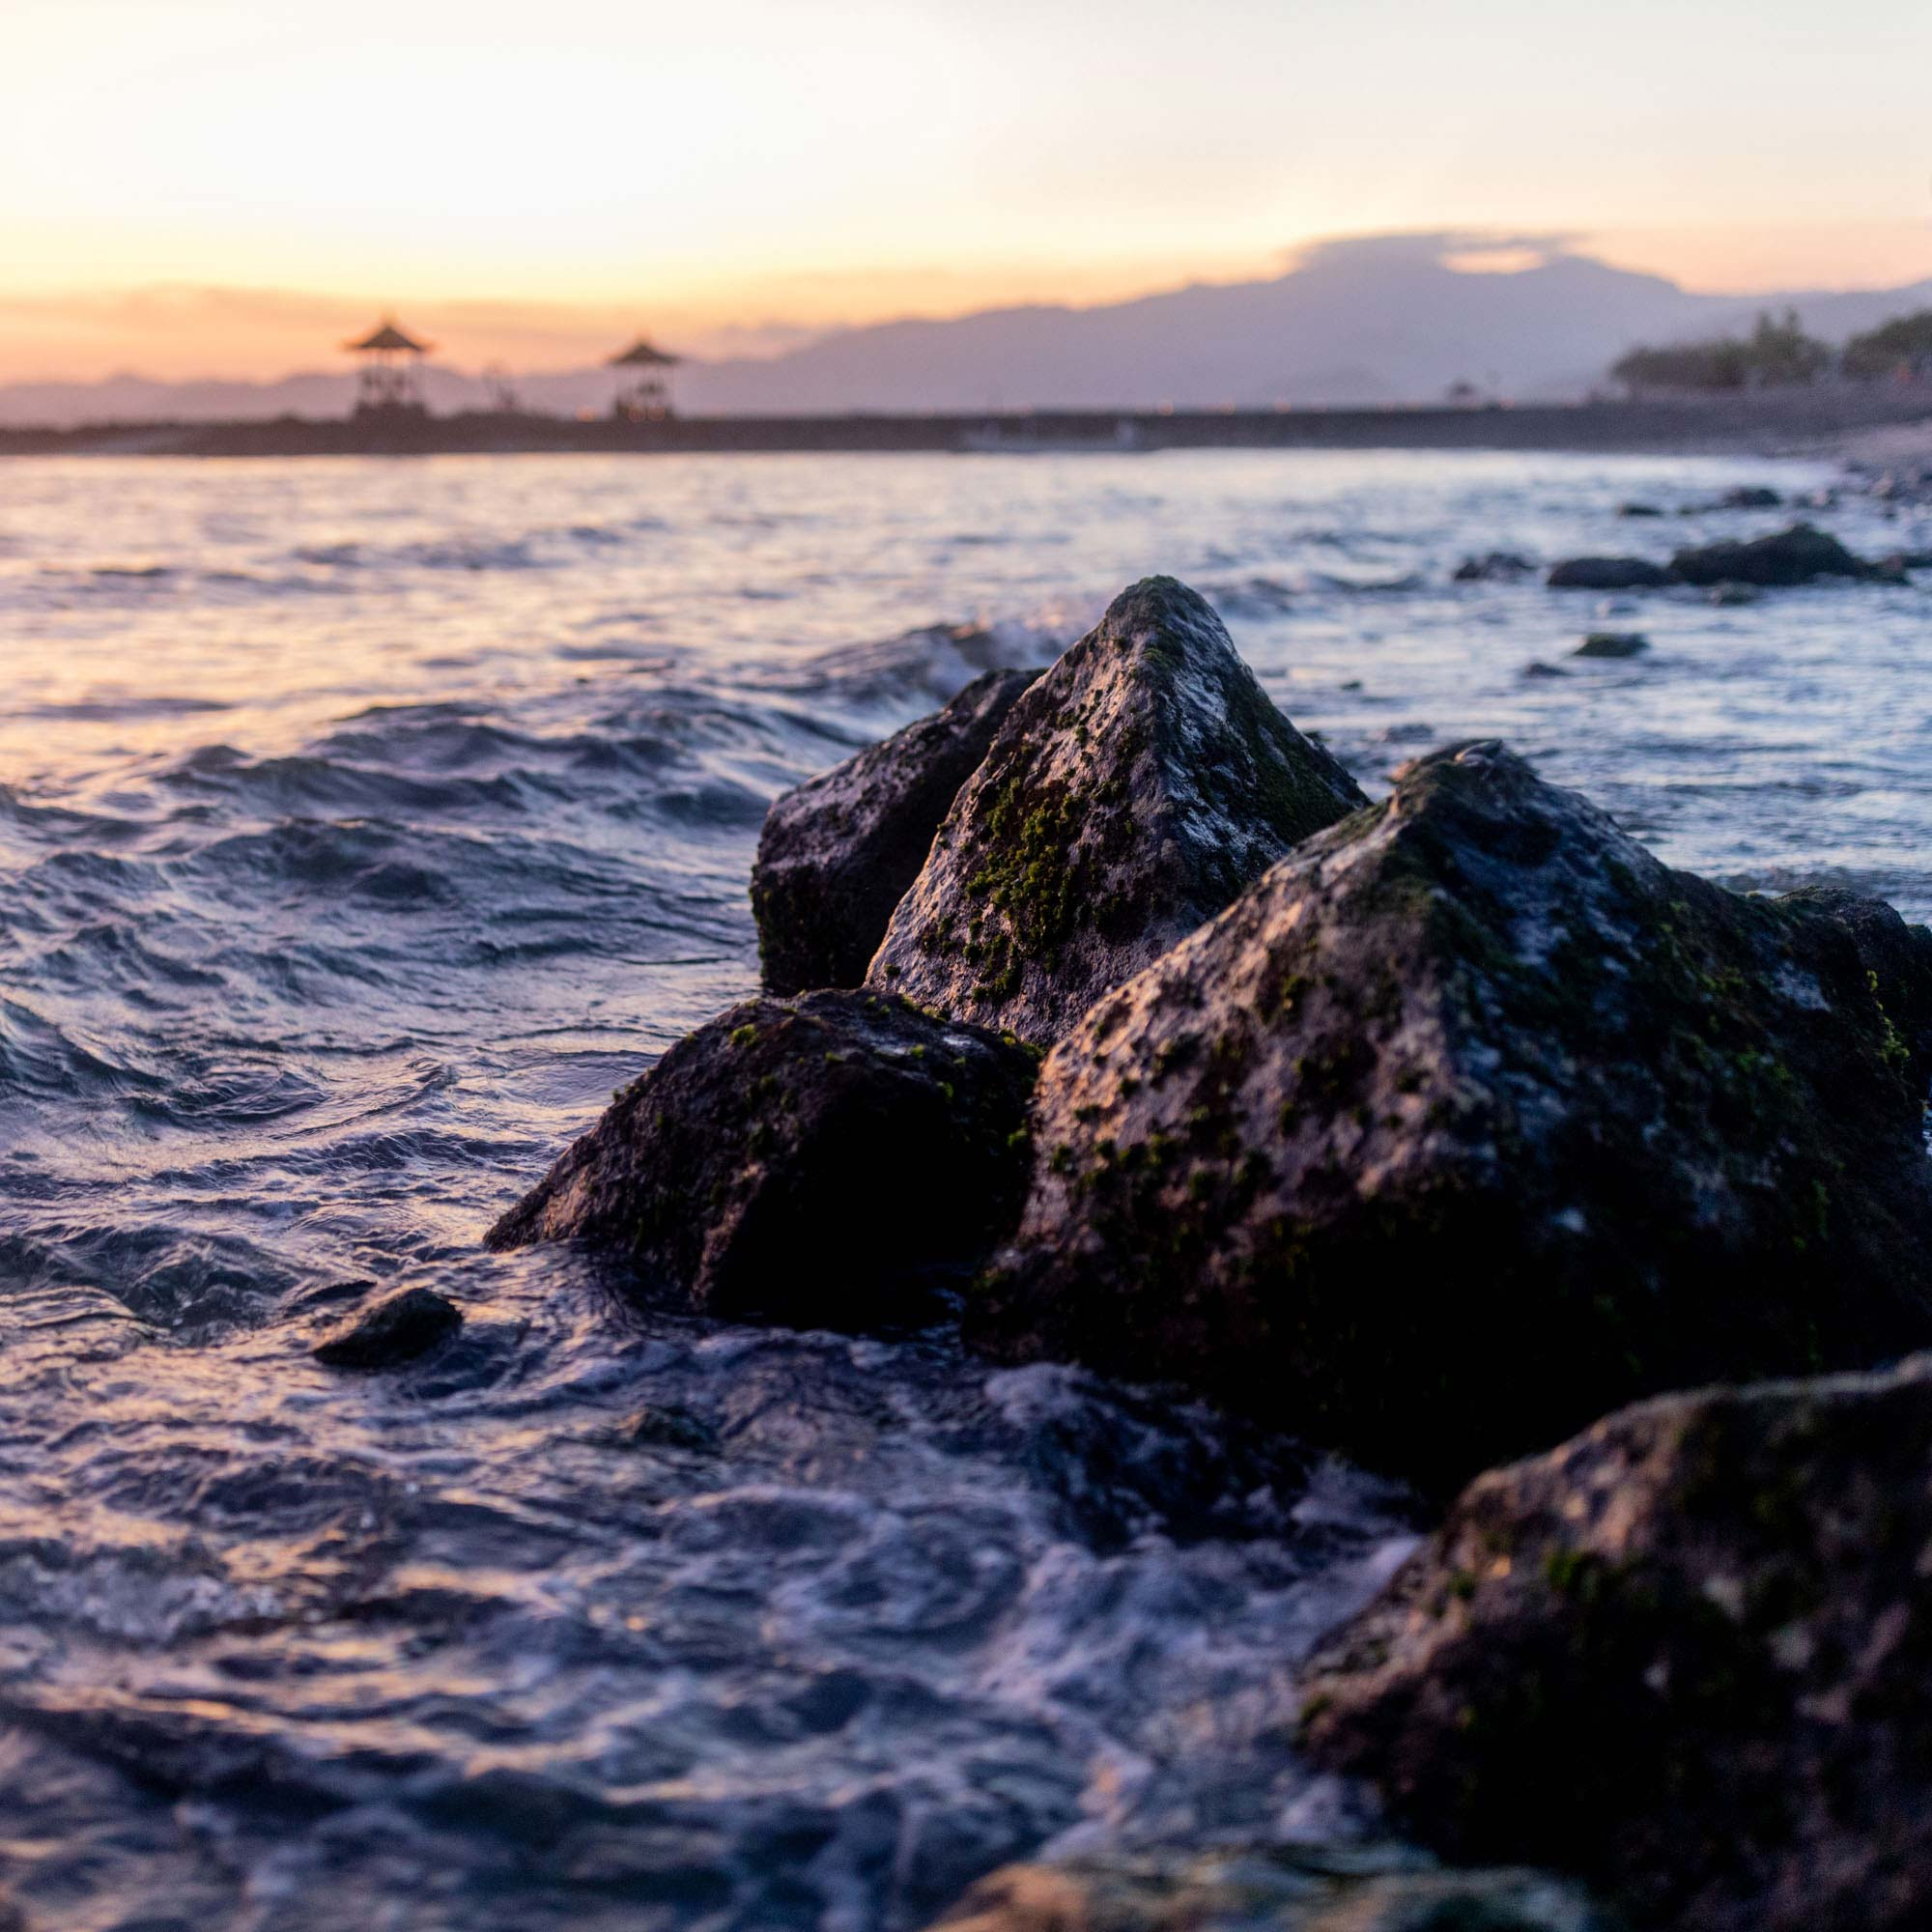 Rocks in water at sunset on beach in Bali, Indonesia | Travel Photography | Nature Photography